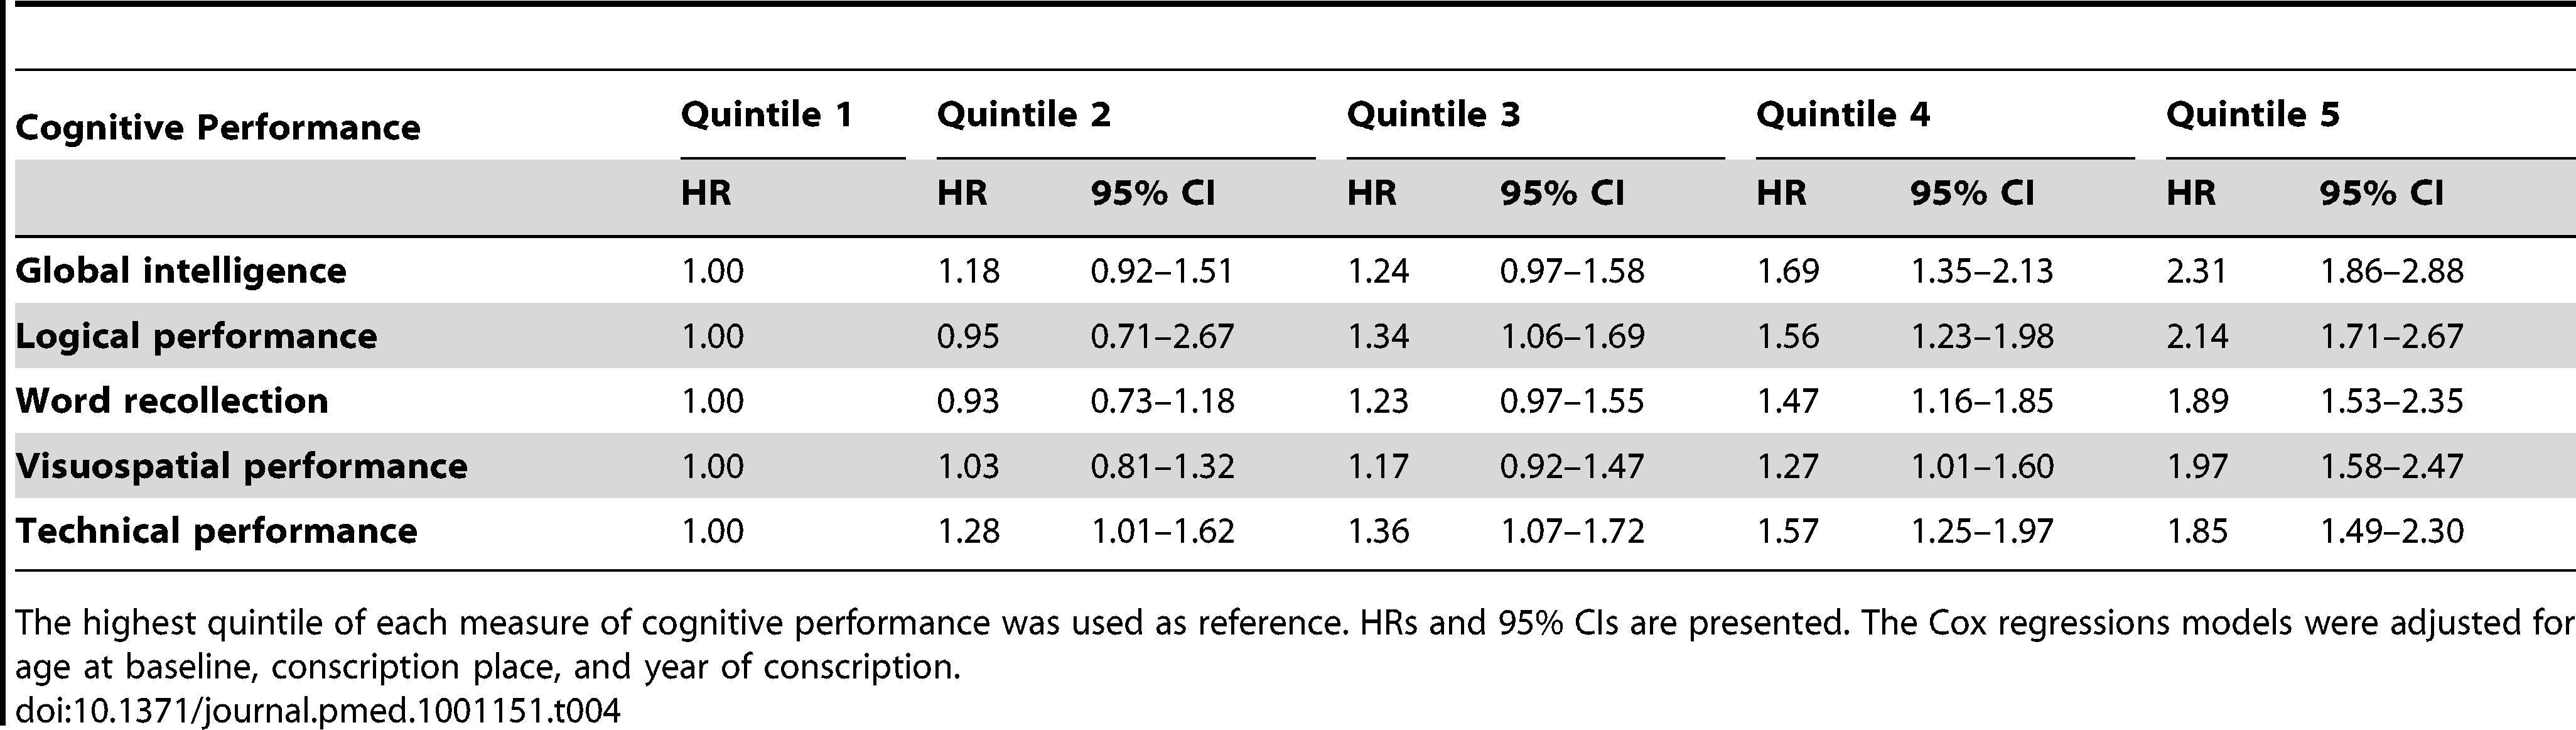 The risk of SDH for quintiles of cognitive performance.